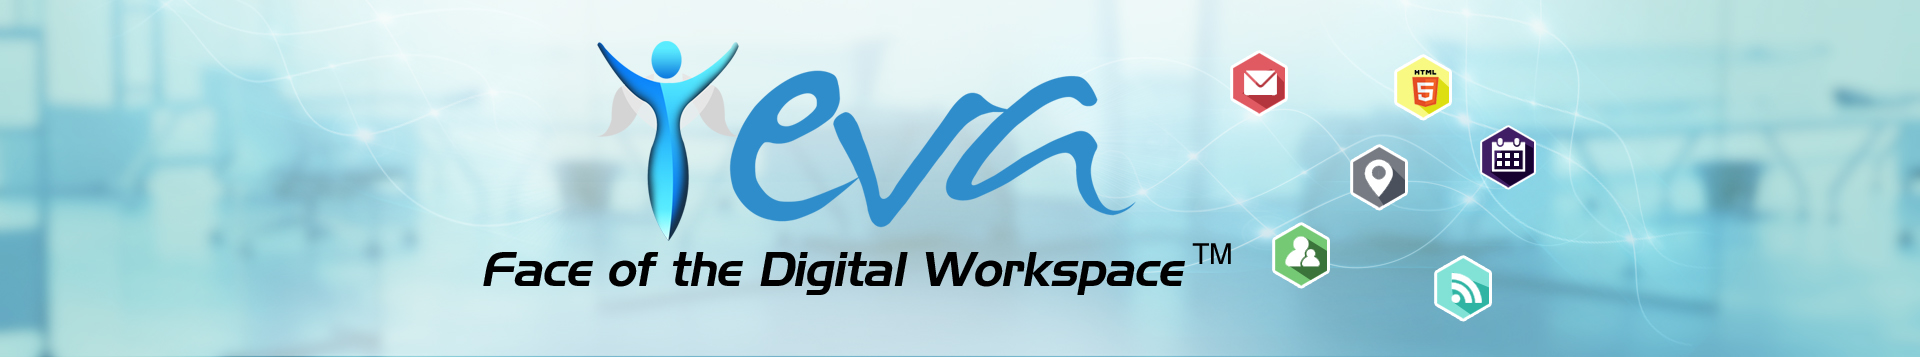 Face of the Digital Workspace